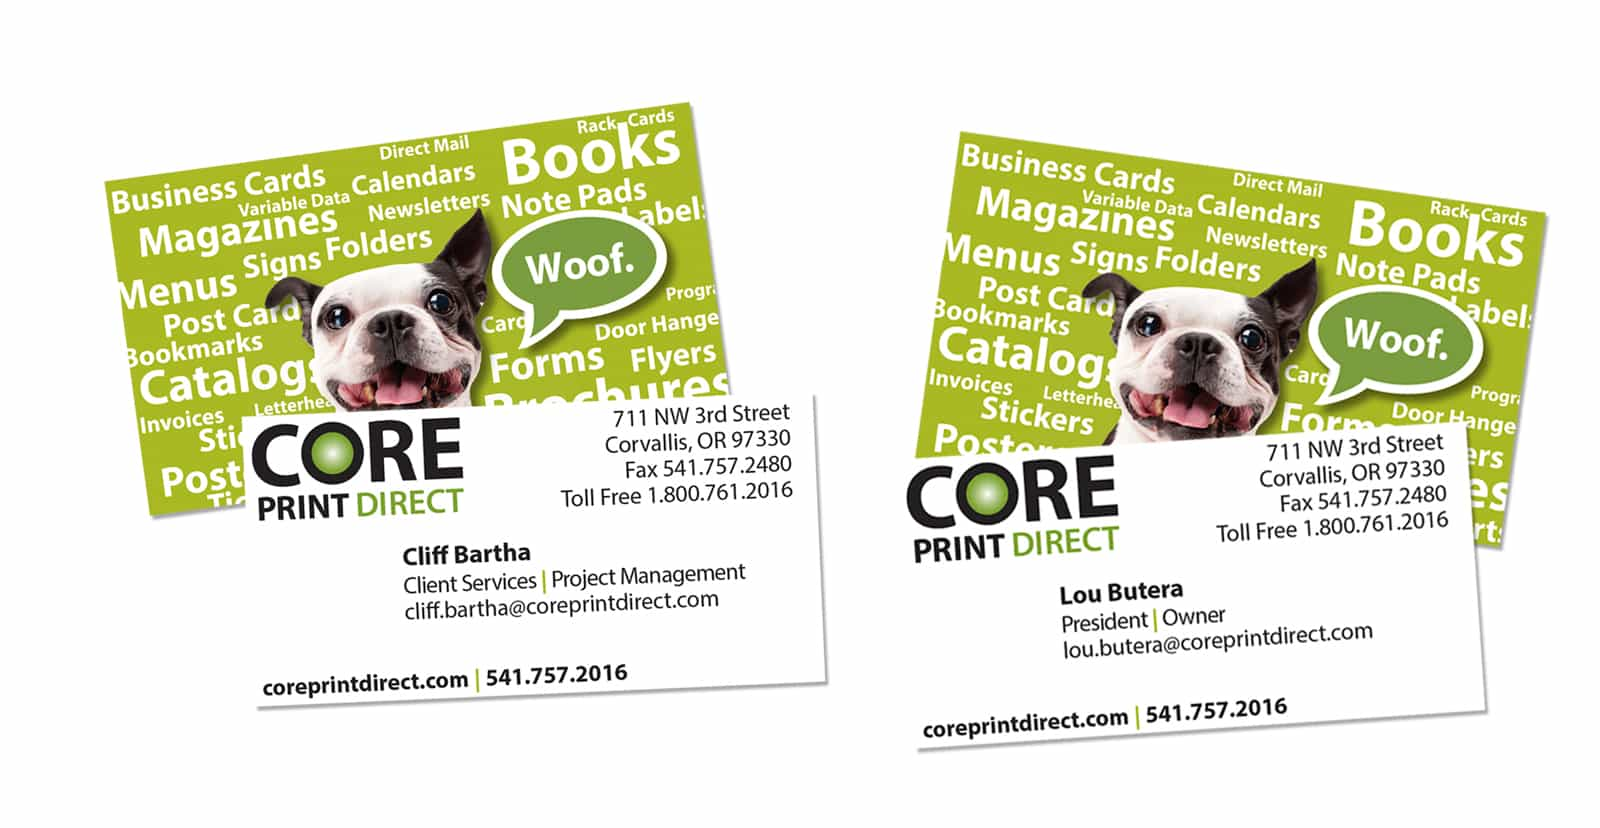 Graphic Design of Business Card